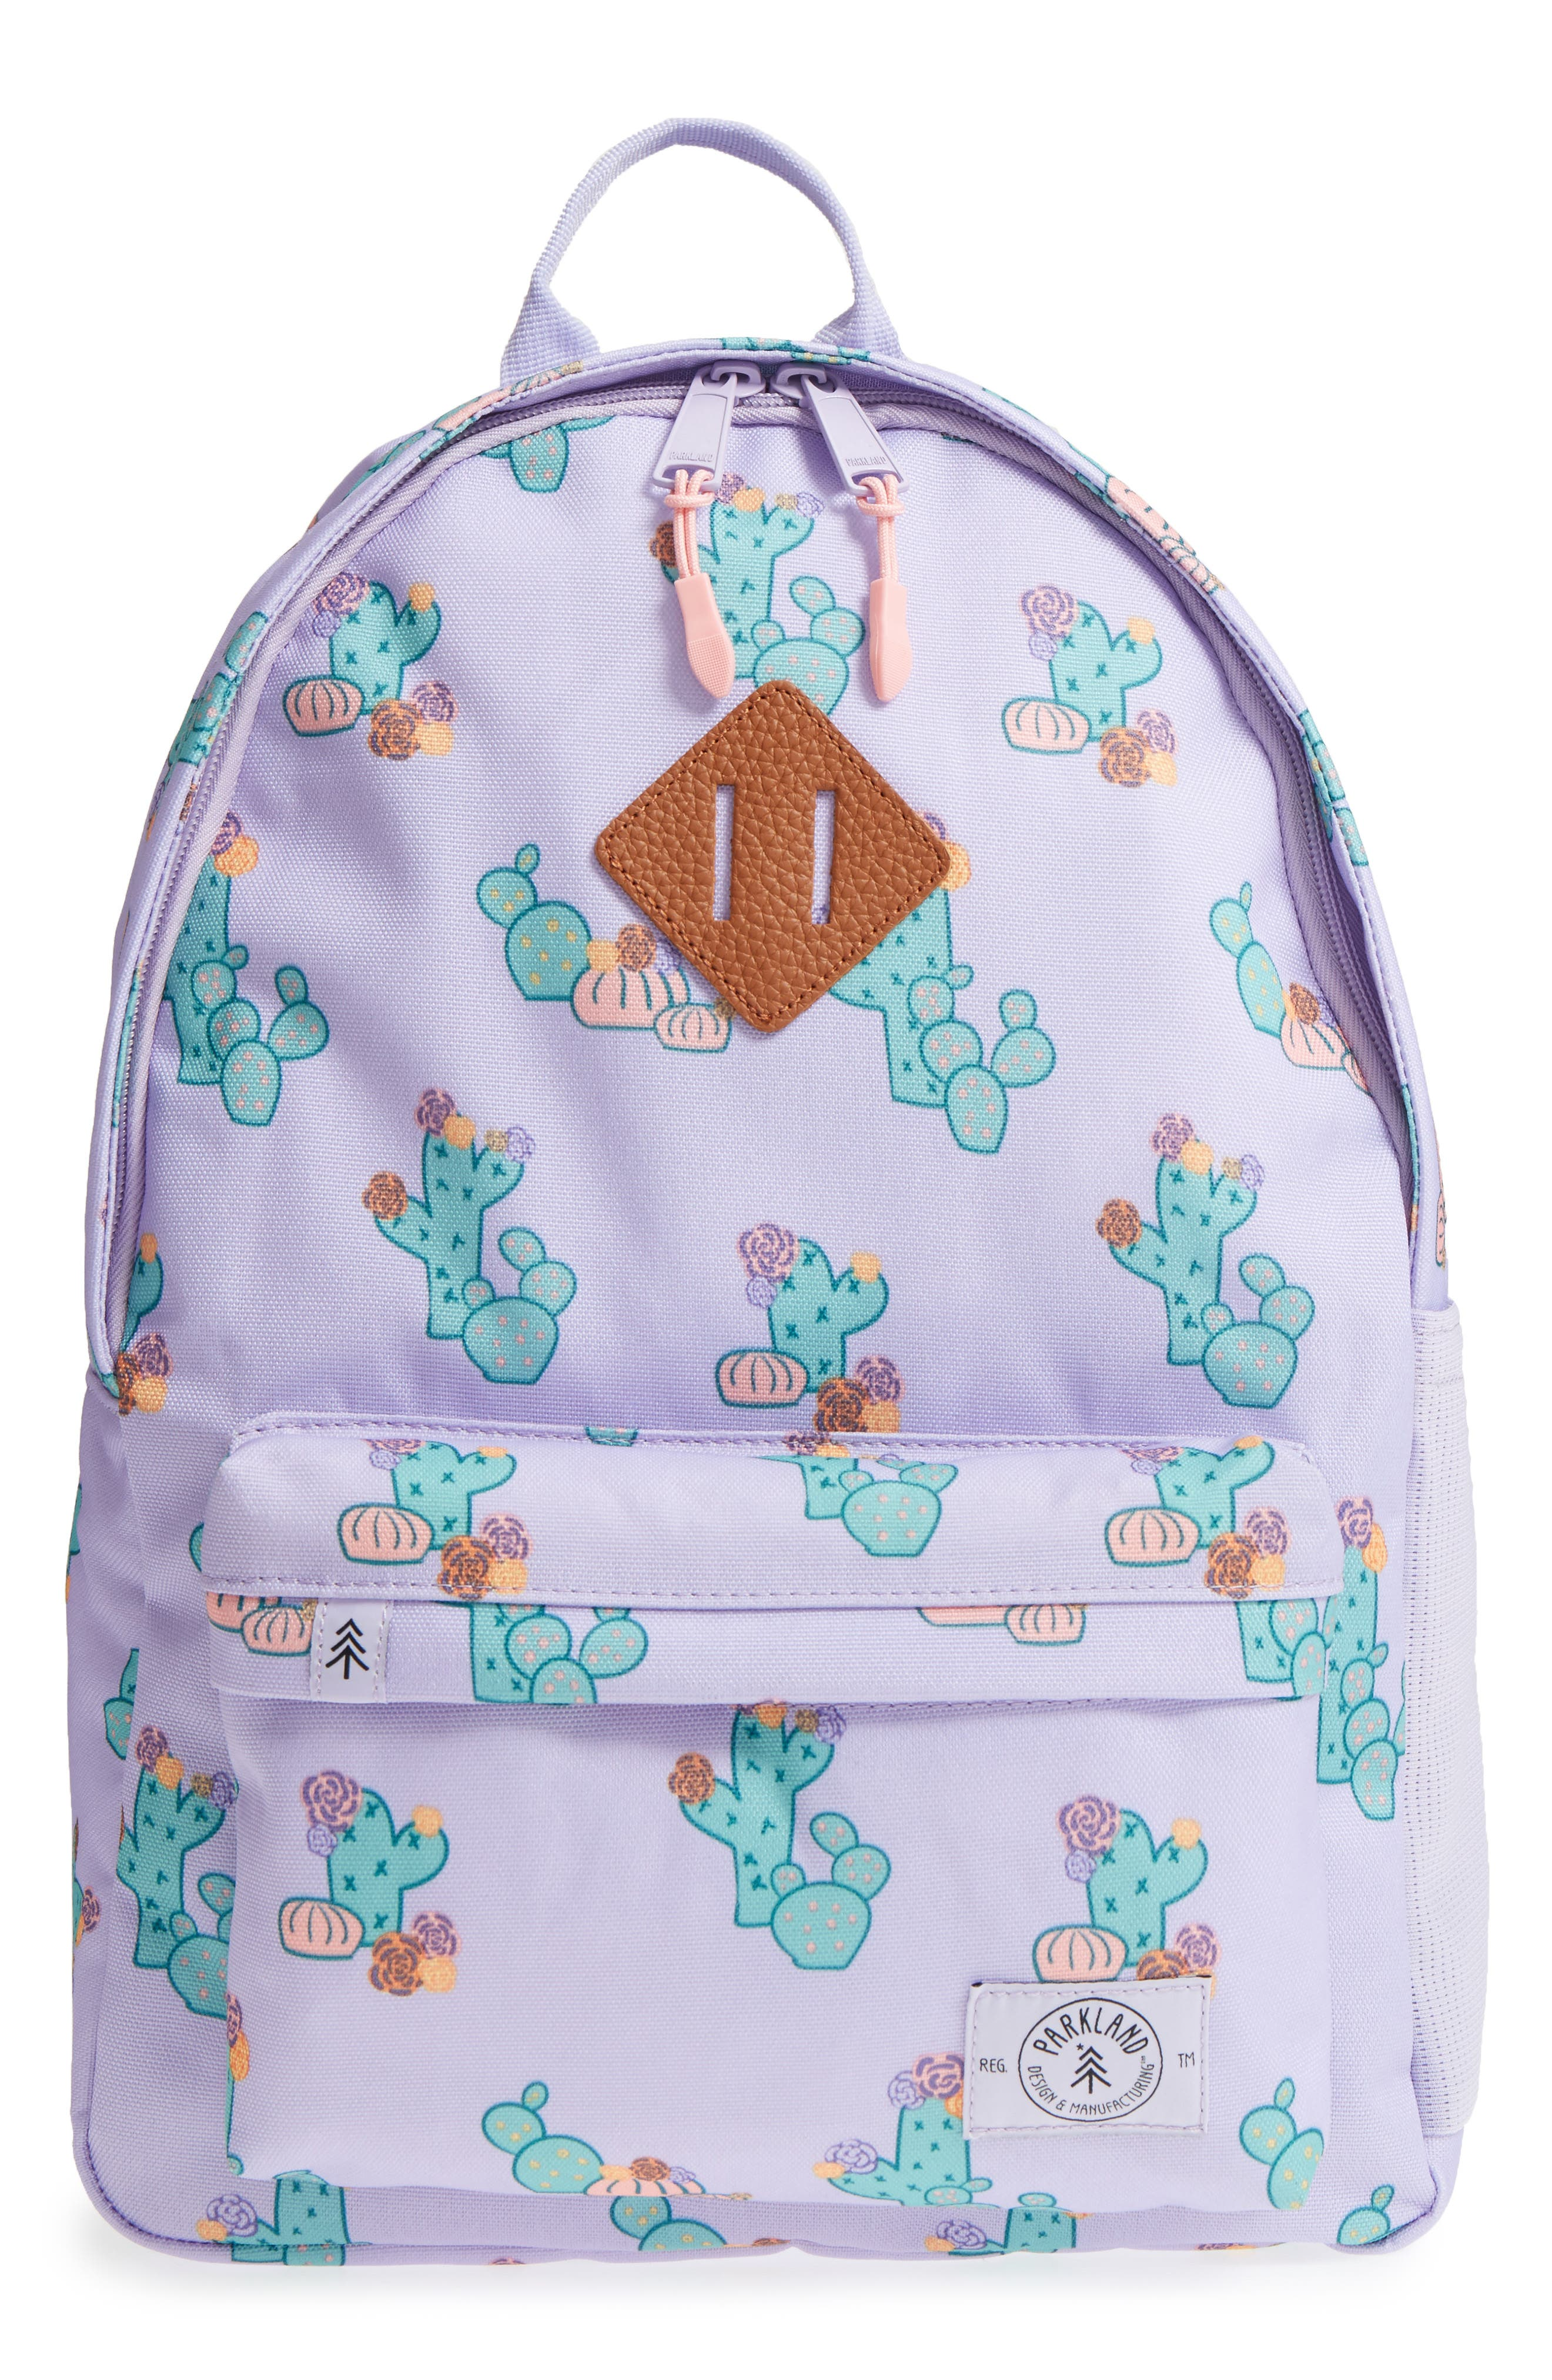 Bayside Cactus Flower Backpack,                         Main,                         color,